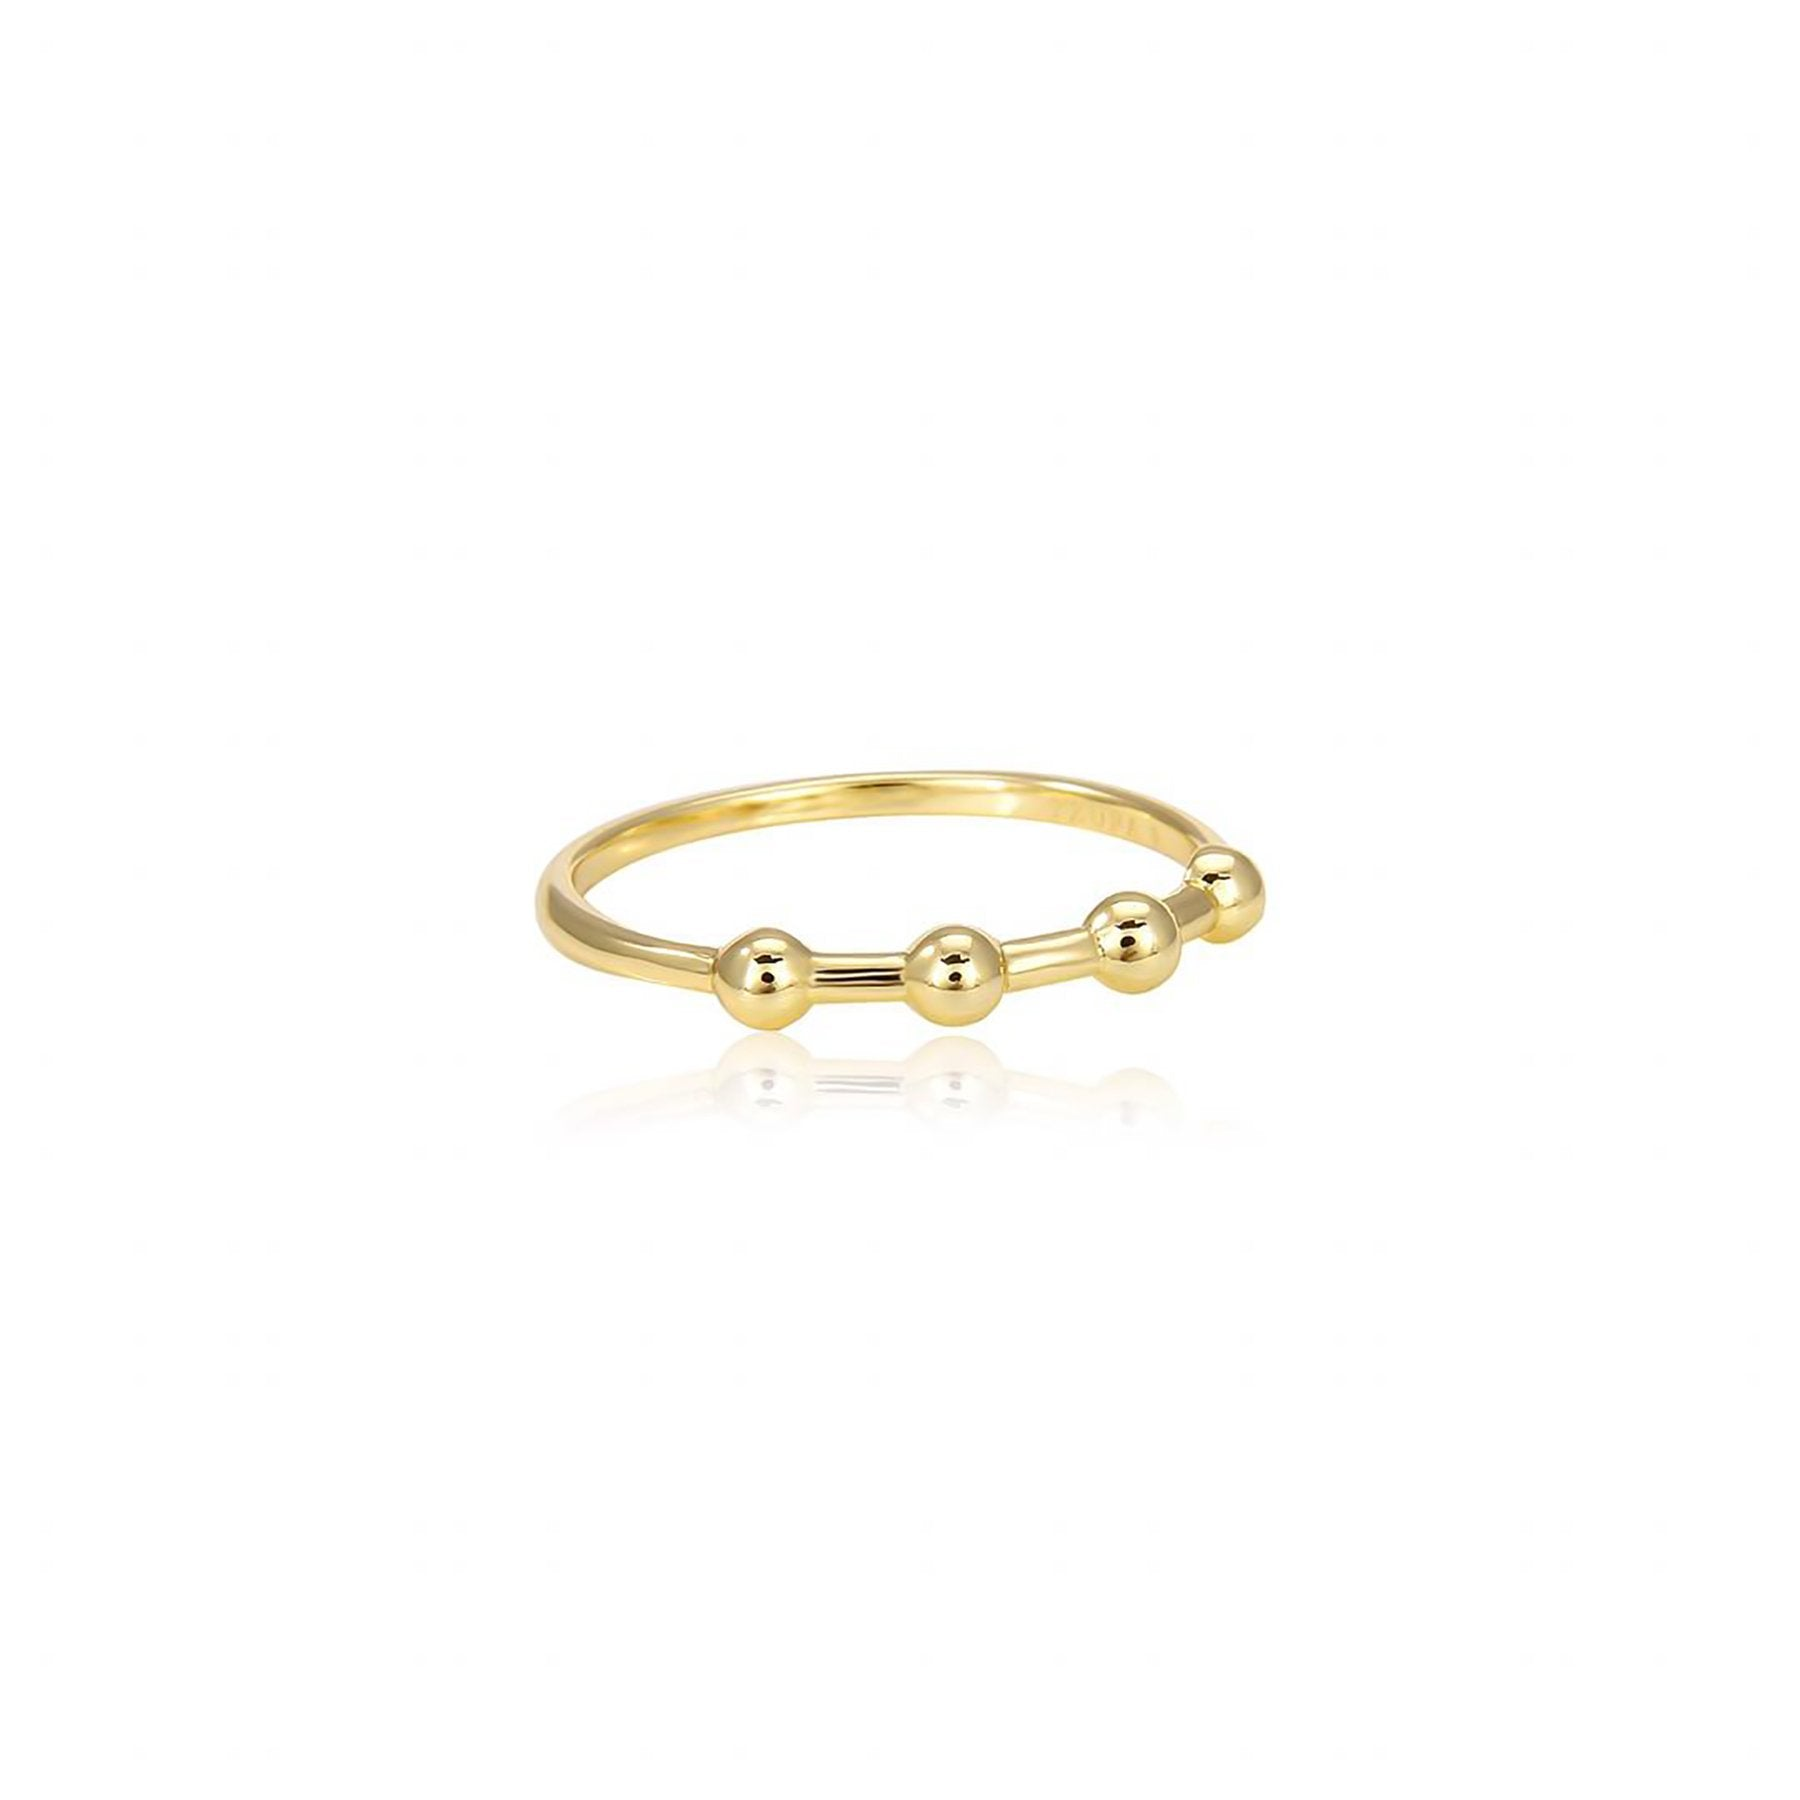 CIRCLES RINGS WITH SPACES GOLD PLATED